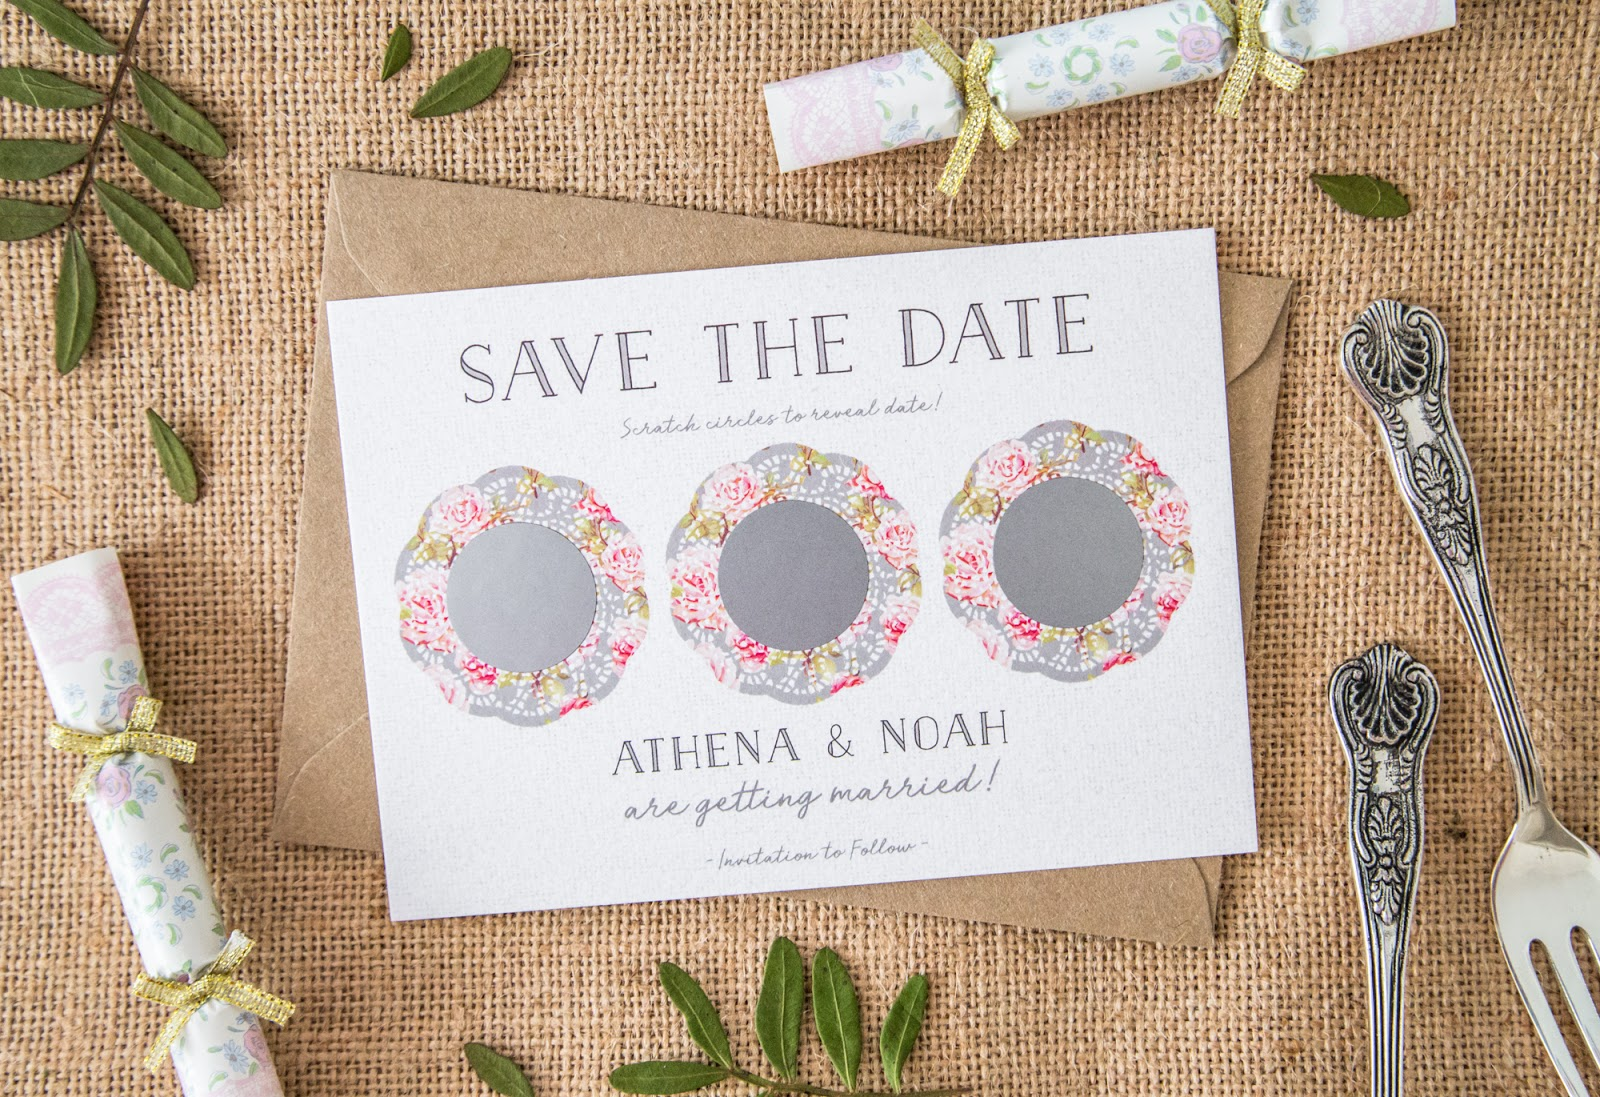 Personalised scratch off save the date doily invites by Soulmate Stationery